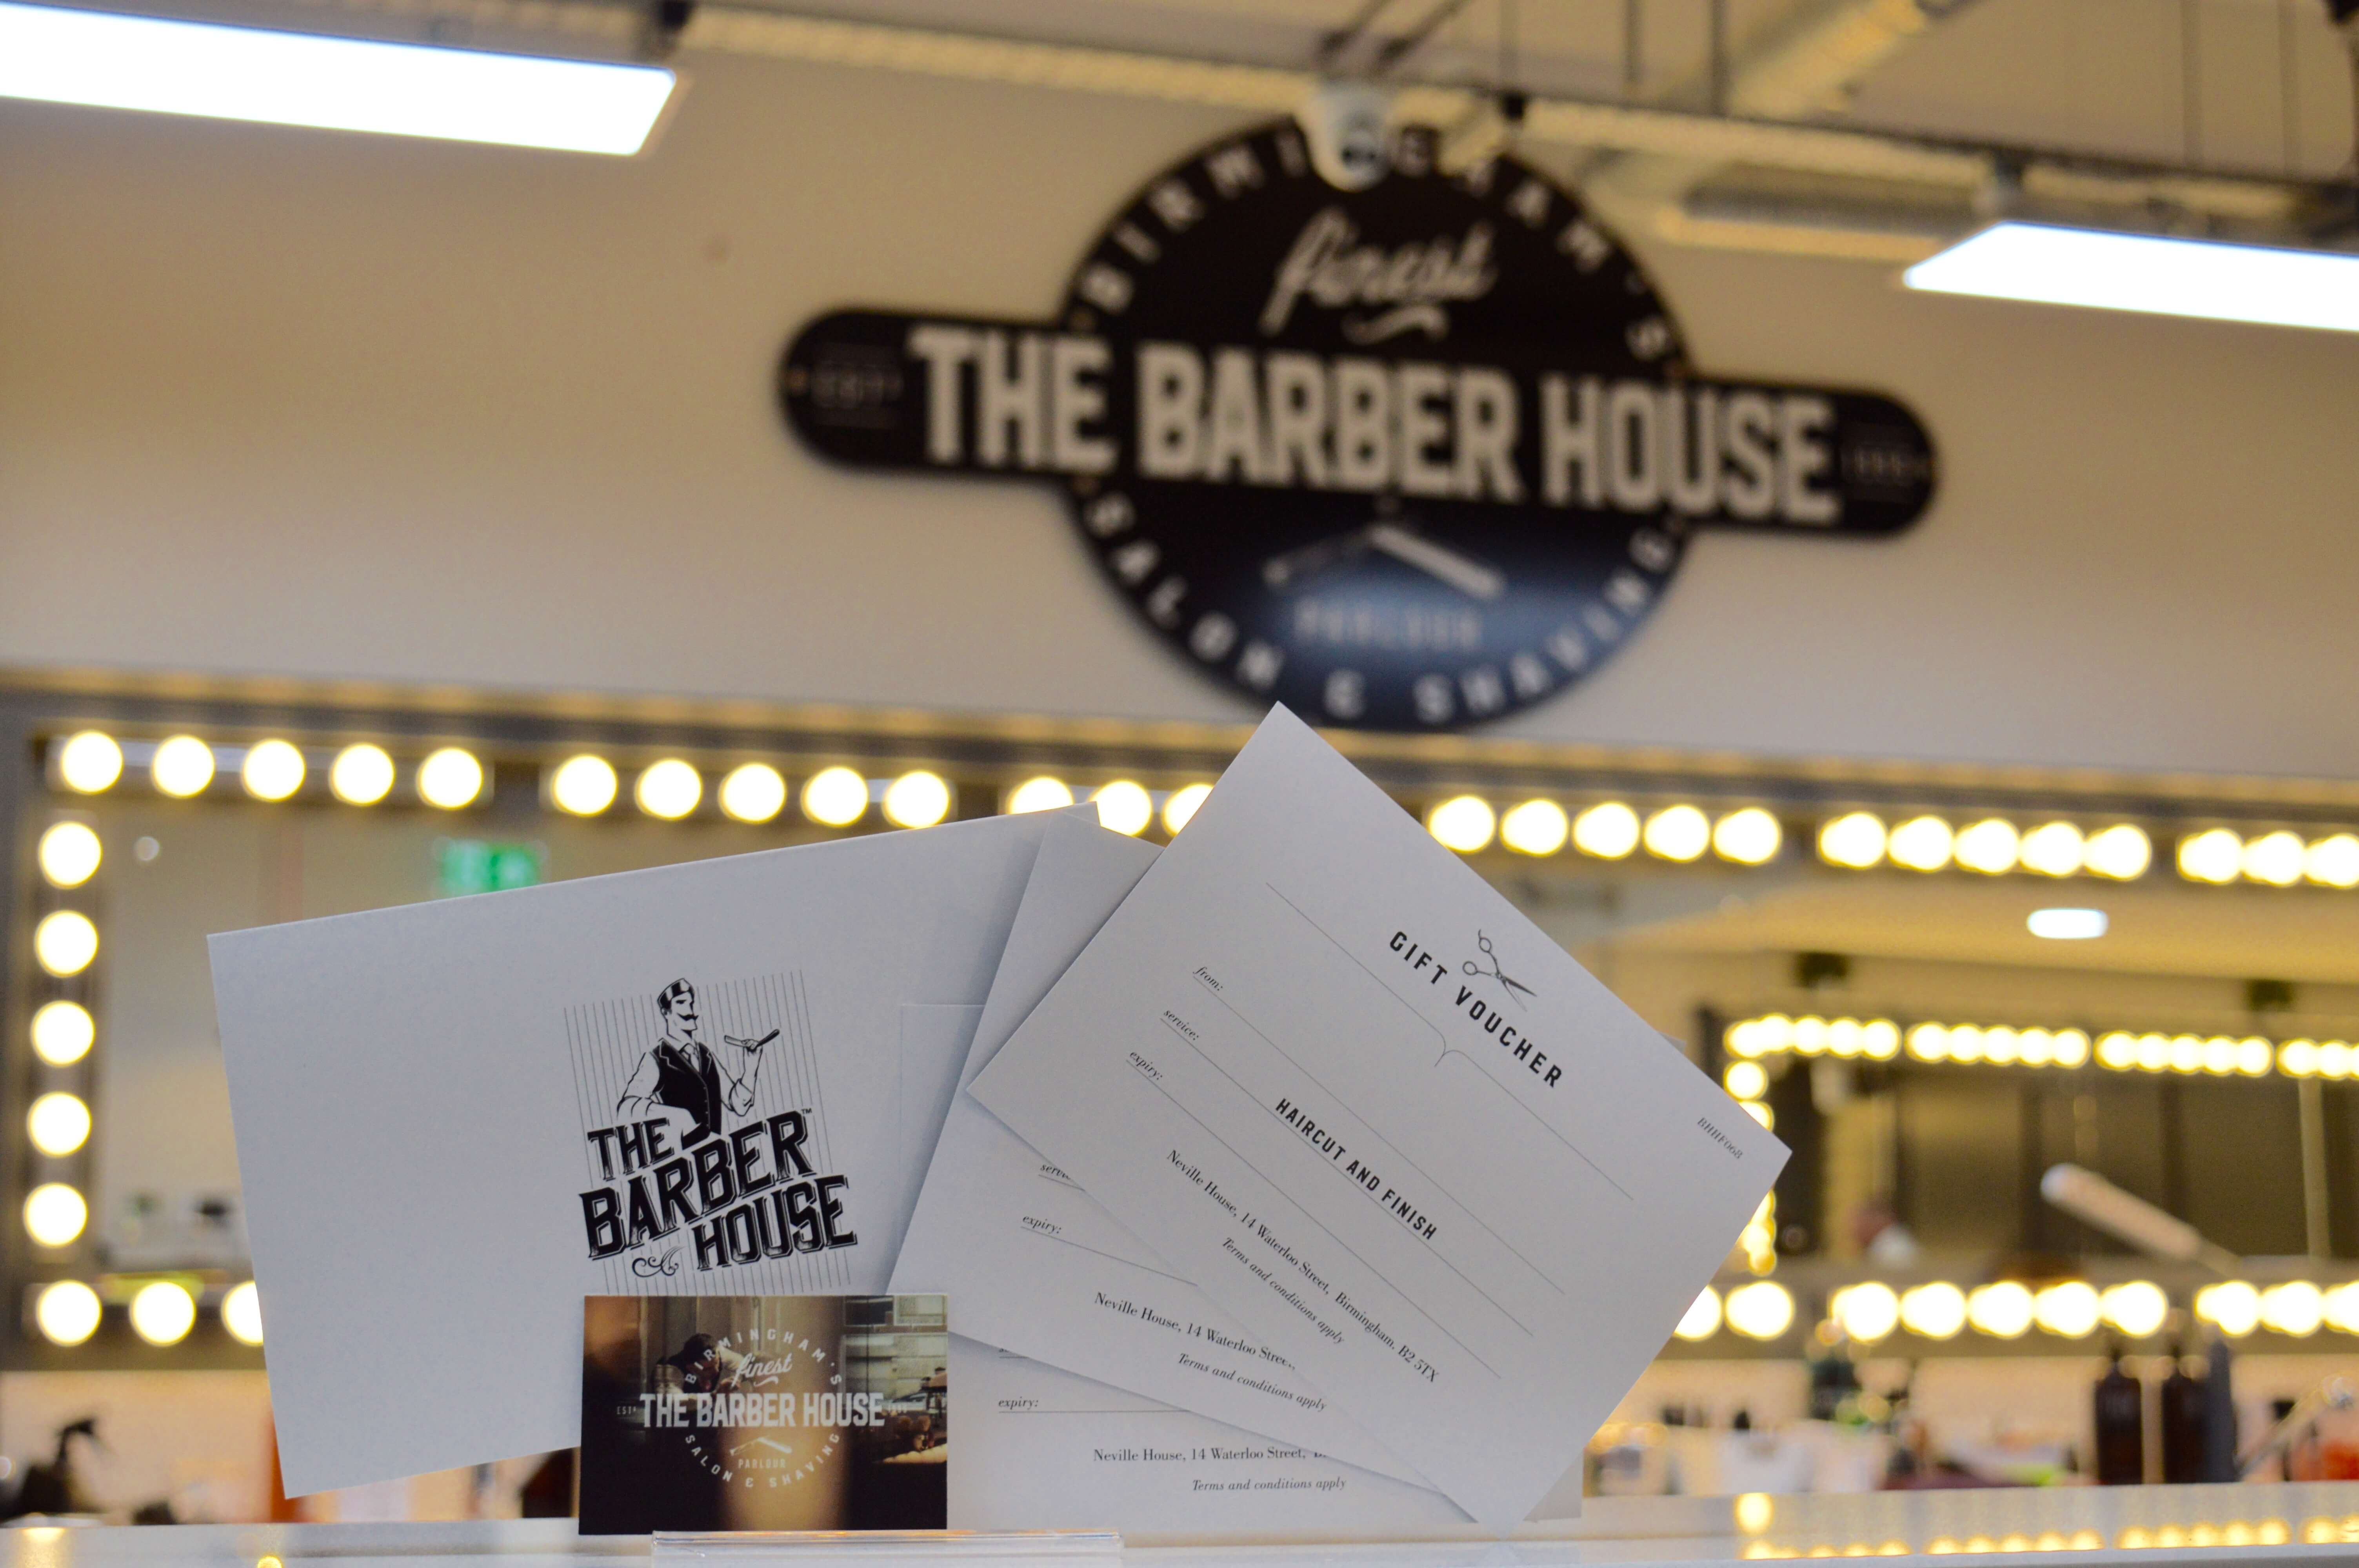 The Barber House, The Barber House Birmingham, Father's Day gifts, Father's Day Birmingham